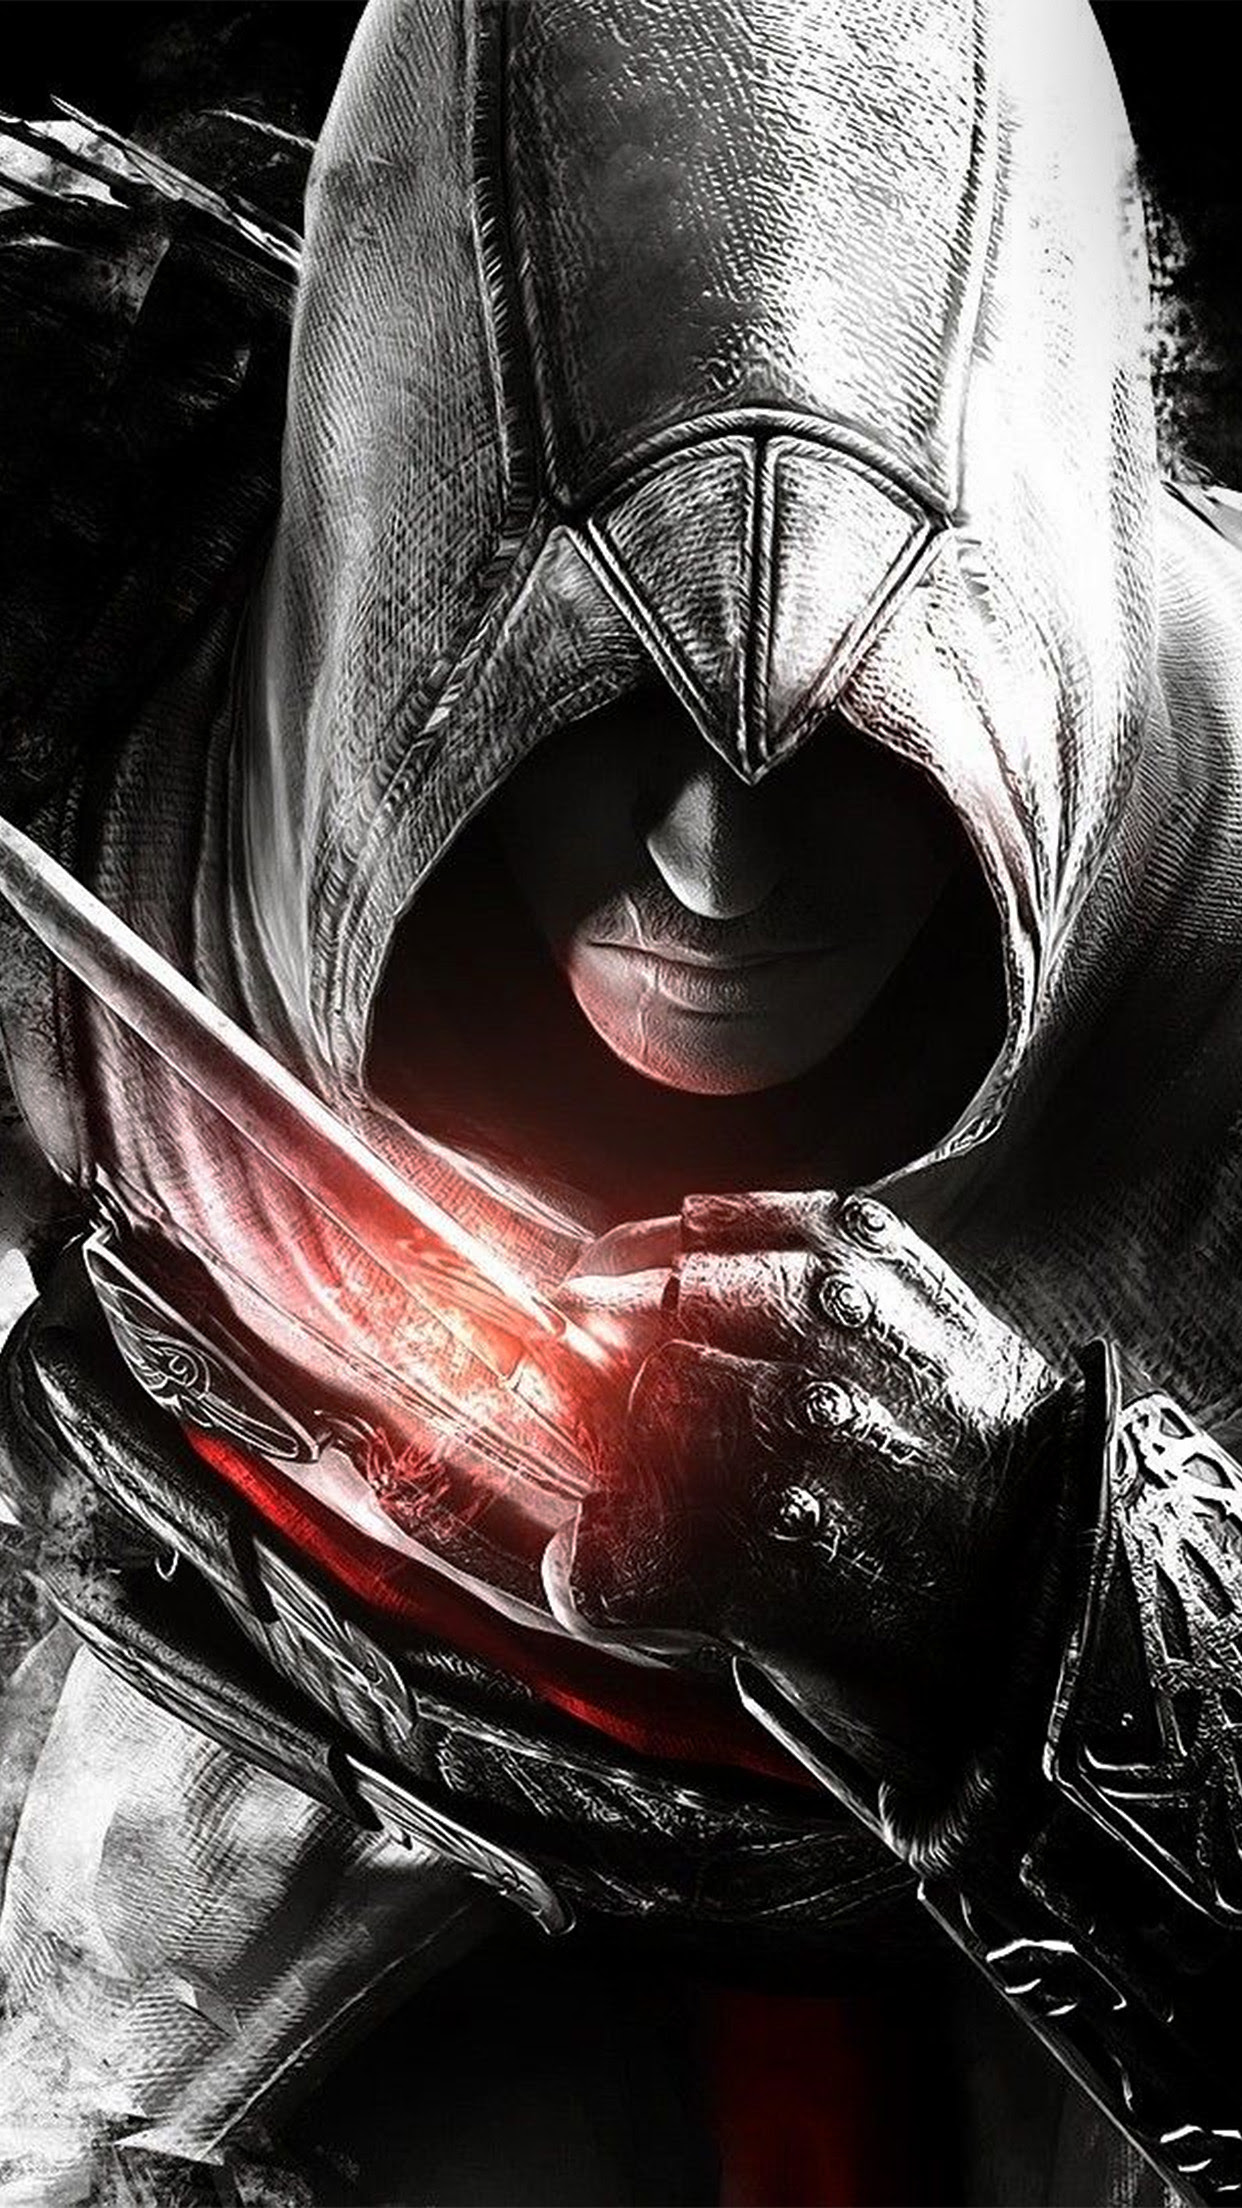 PAPERS.co  iPhone wallpaper  av03assassinscreeddarkgameheroillustrationart